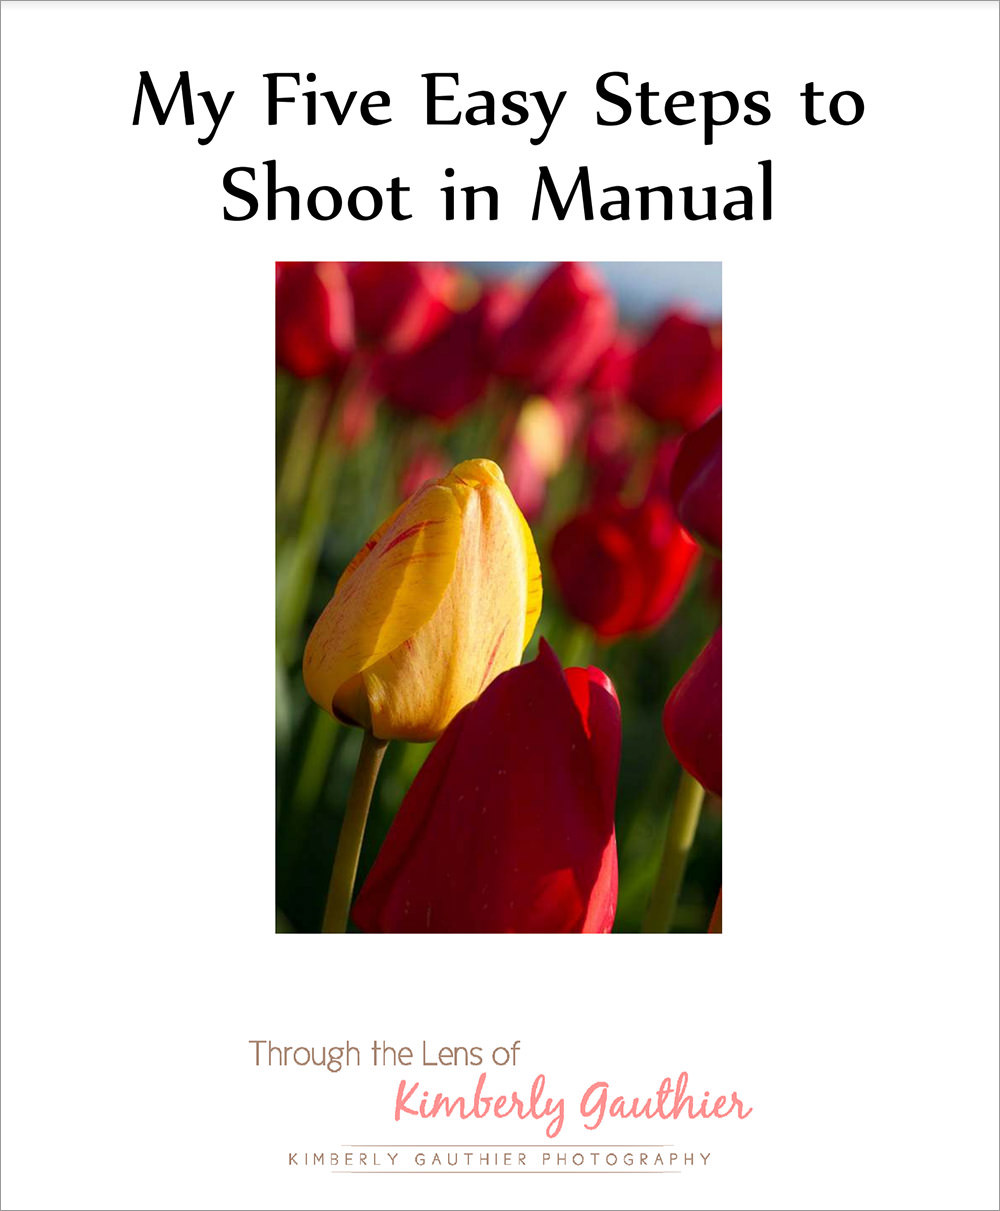 My-Five-Easy-Steps-to-Shoot-in-Manual